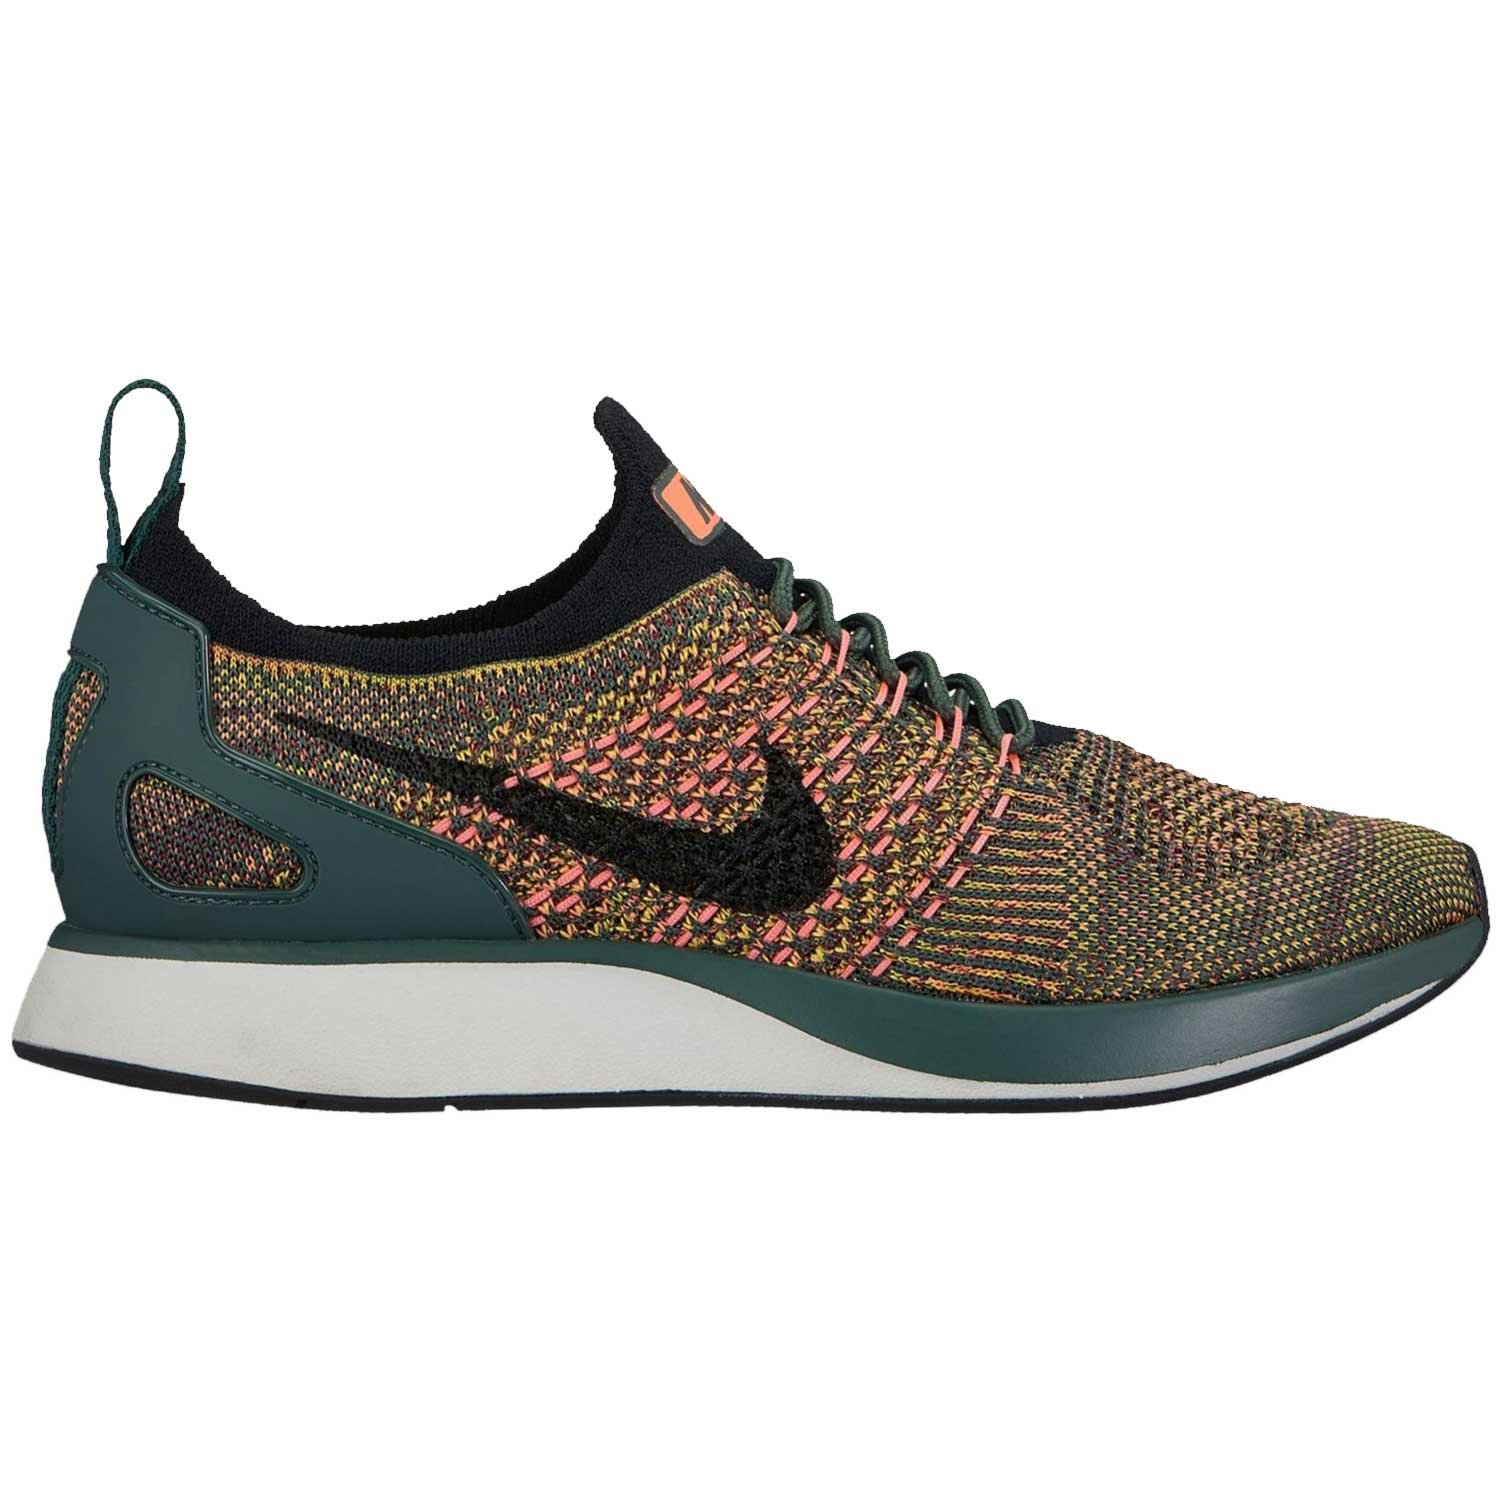 NIKE Womens Air Zoom Mariah Flyknit Racer Running Trainers Aa0521 Sneakers Shoes B07C46YPHJ 6 B(M) US|Vintage Green/Black-Summit White